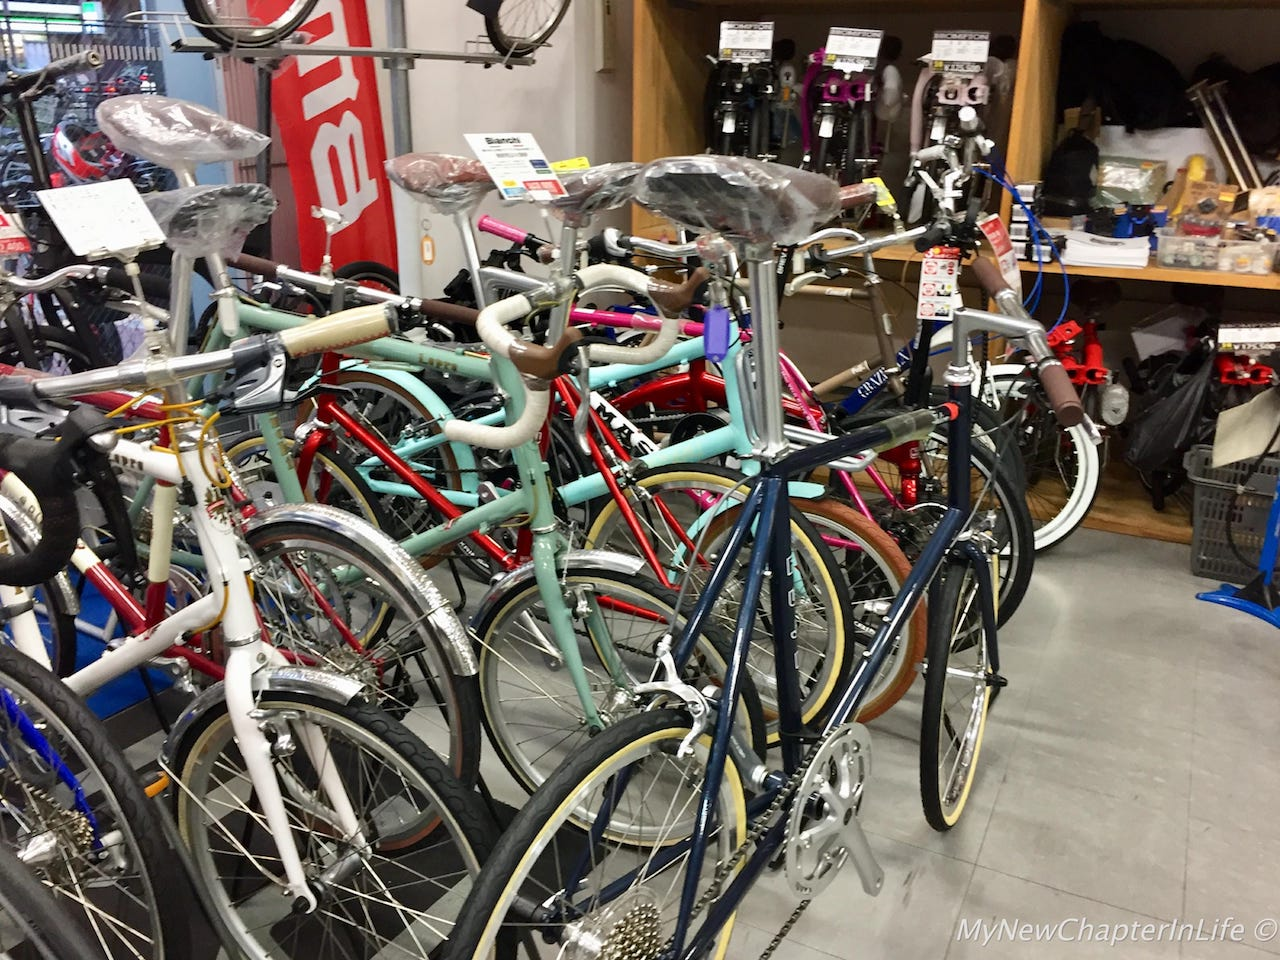 Colourful Fixies on display